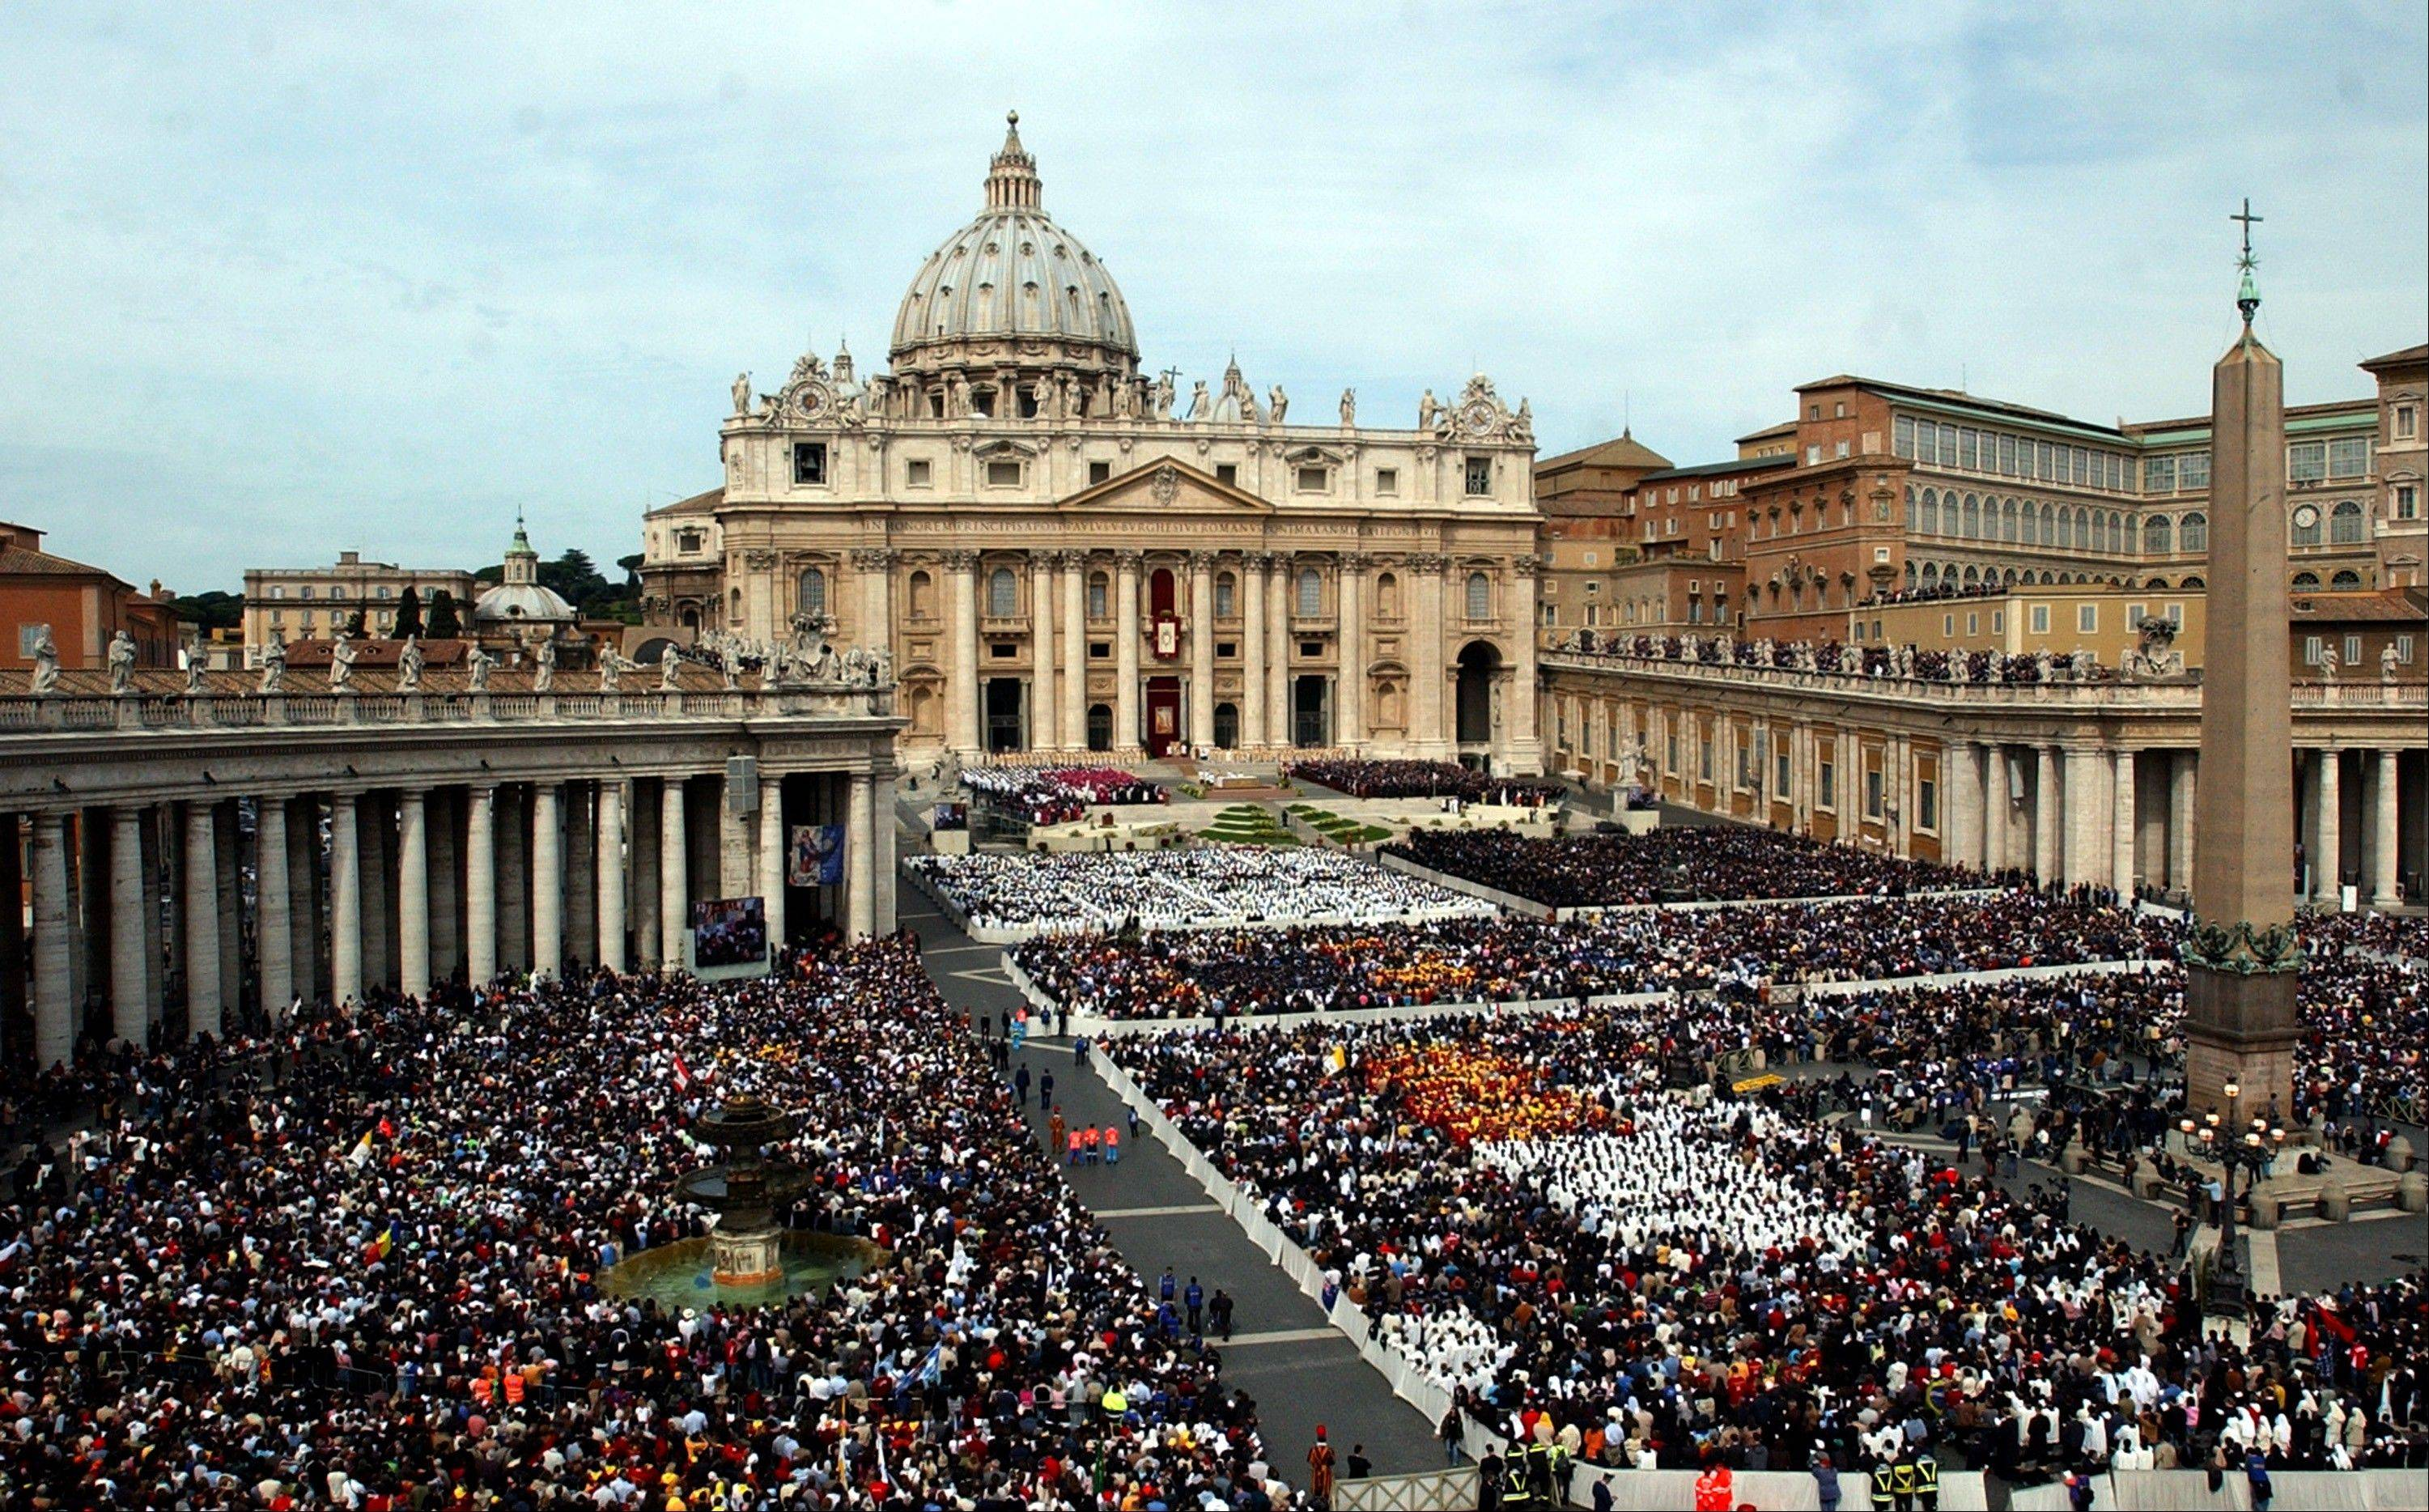 Thousands of people attend the installment Mass of Pope Benedict XVI in St. Peter's Square at the Vatican.